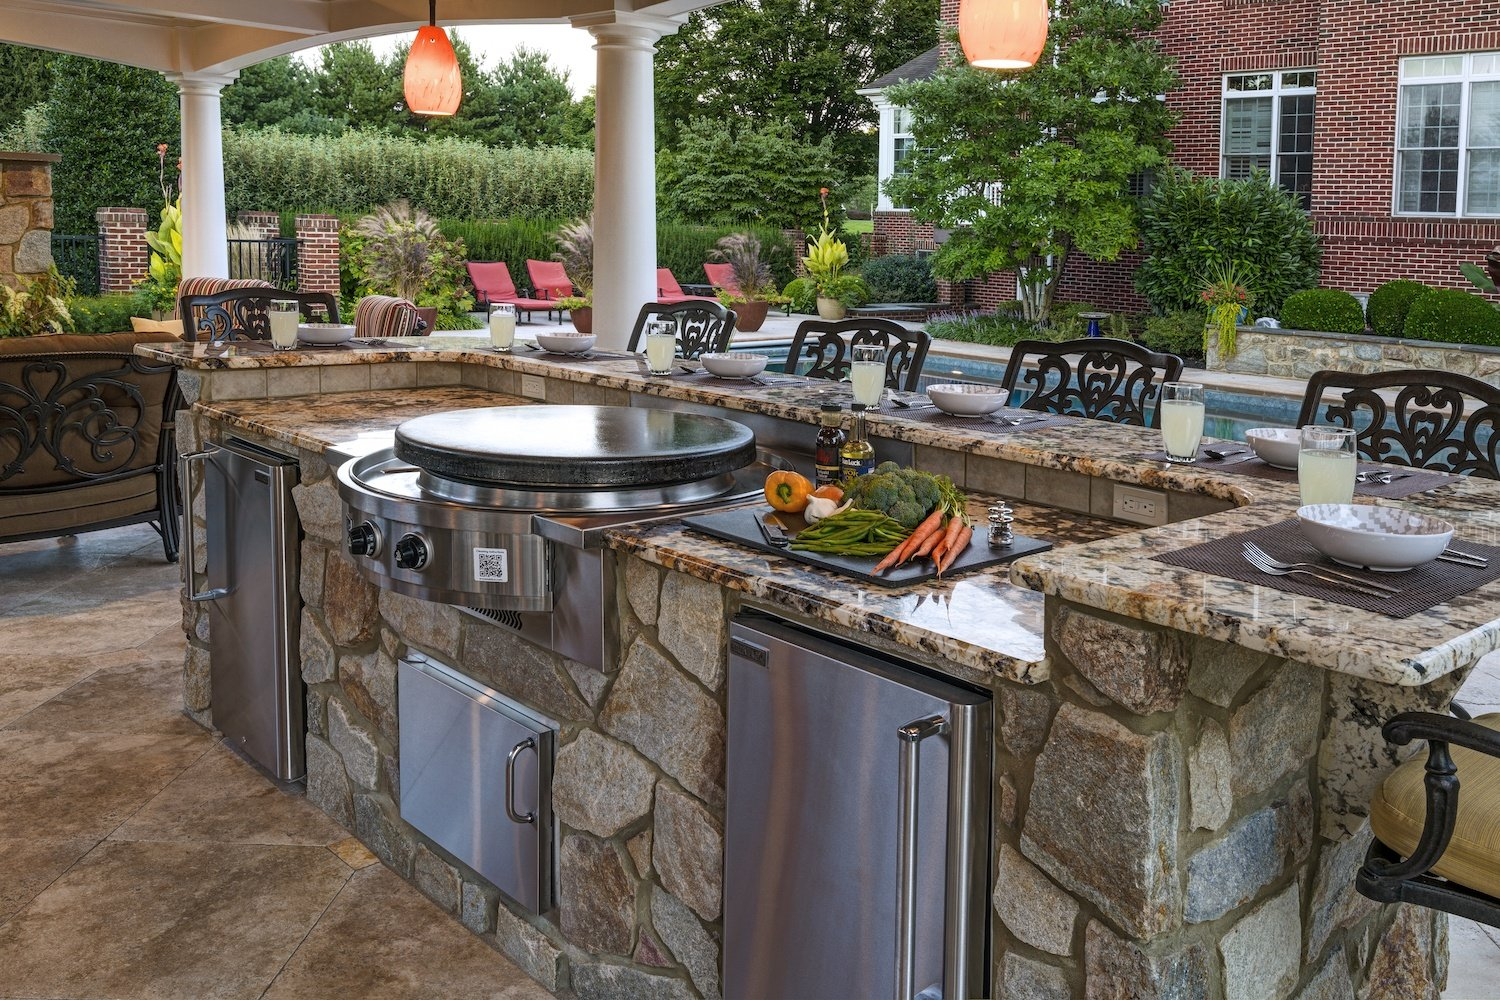 outdoor kitchen appliances and bar overlooking pool